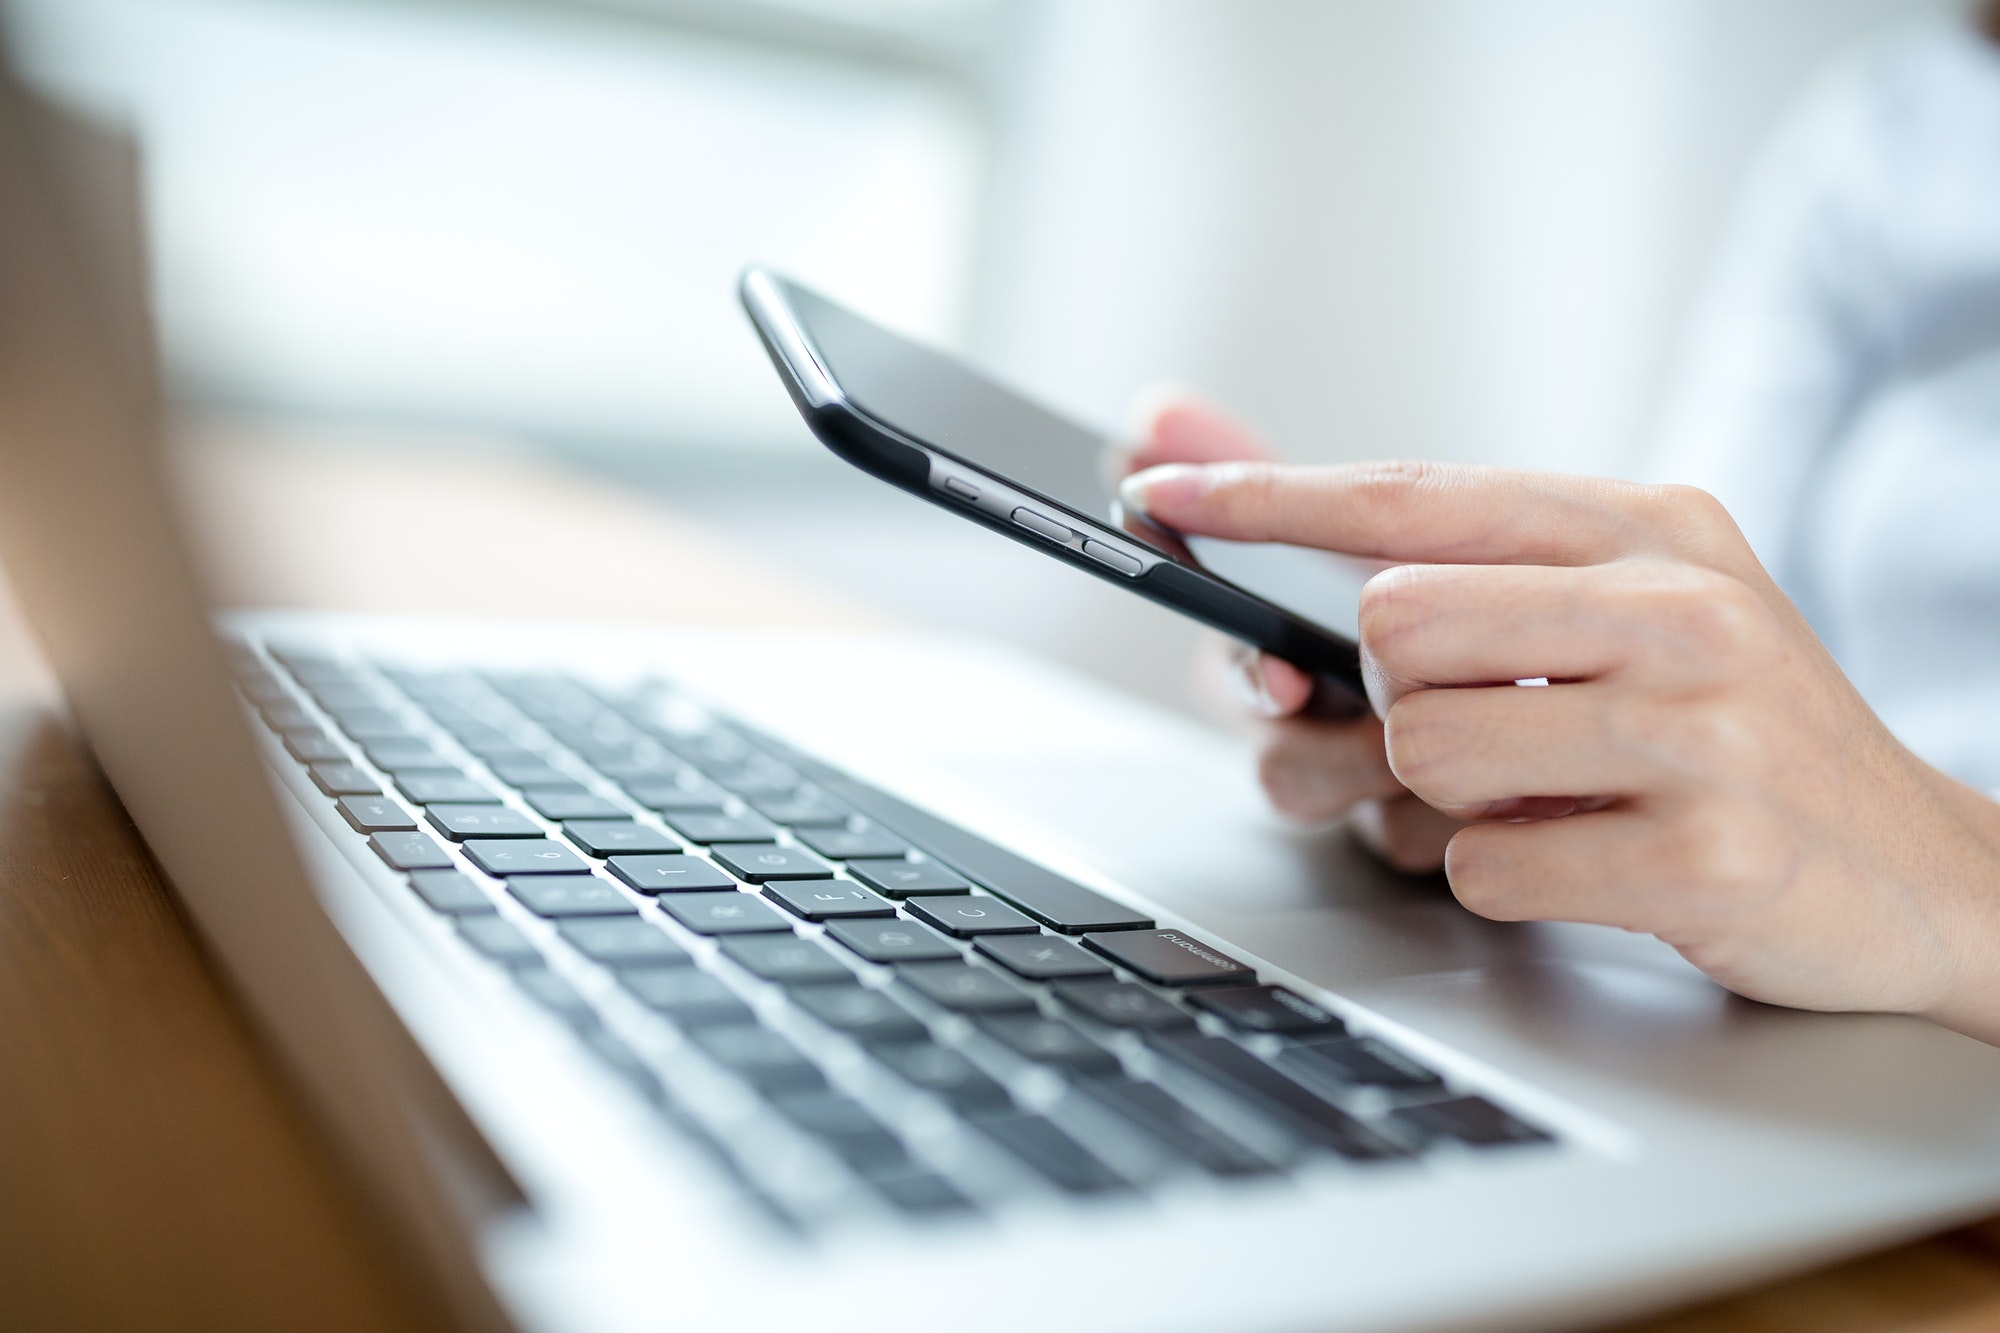 mobile device management service for your business